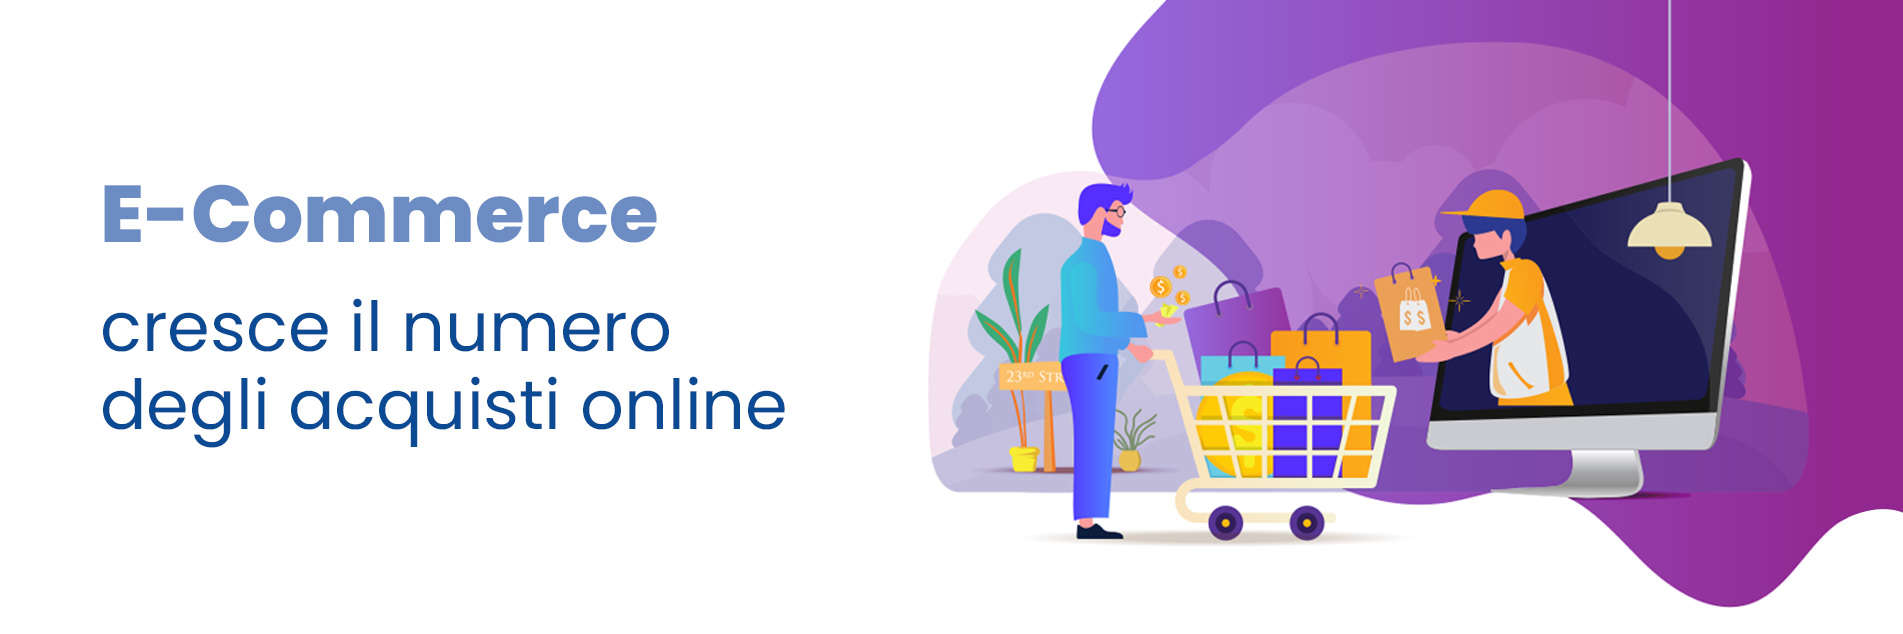 E-Commerce: The number of online purchases increases